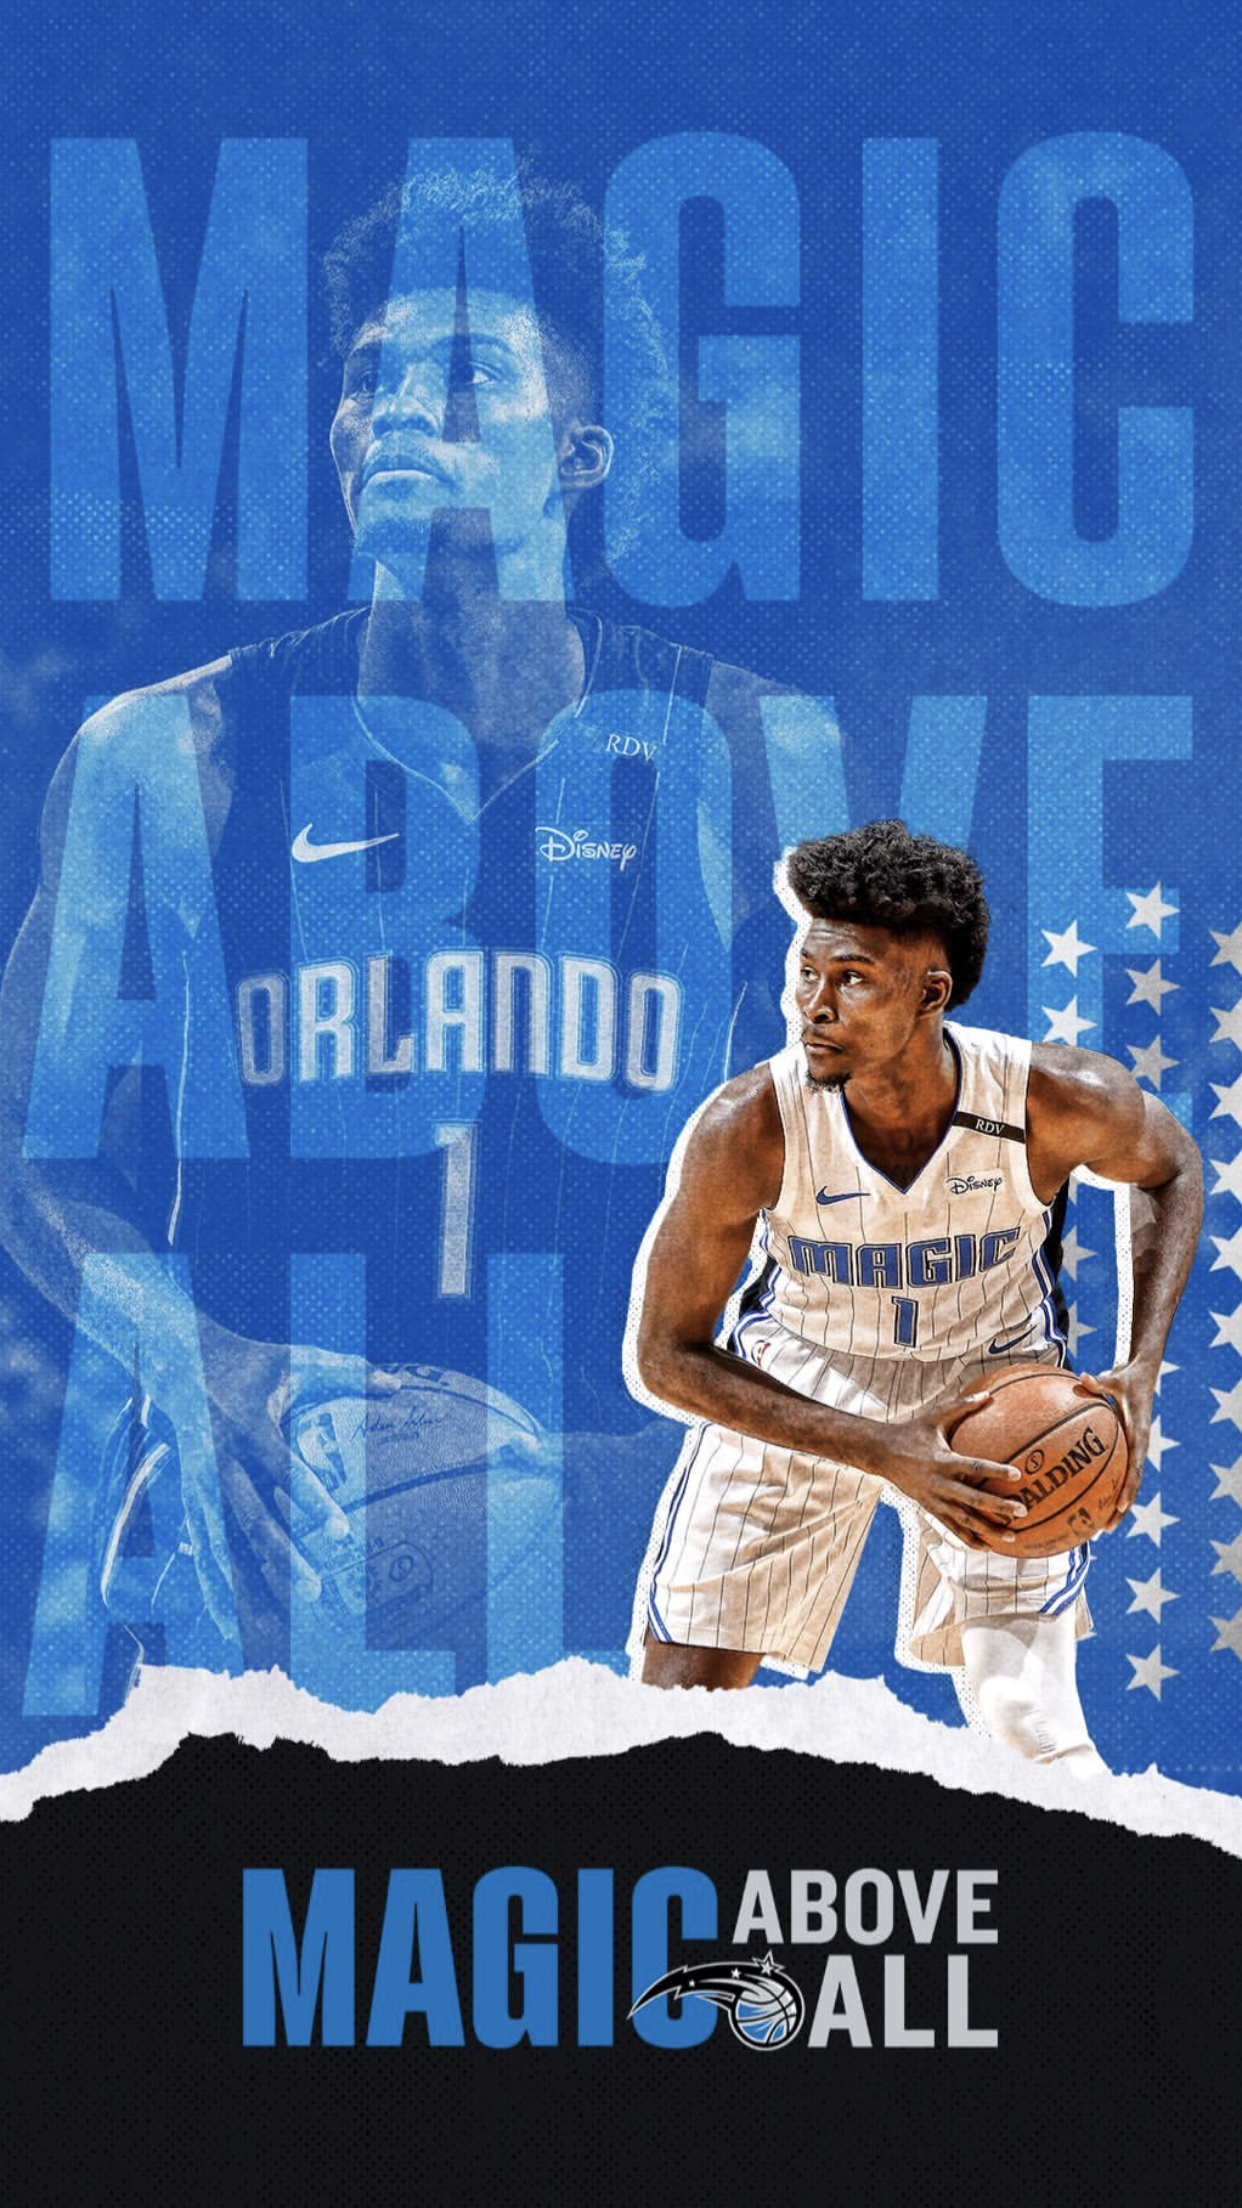 Orlando Magic Wallpaper 2019 Orlando Magic Orlando Nba